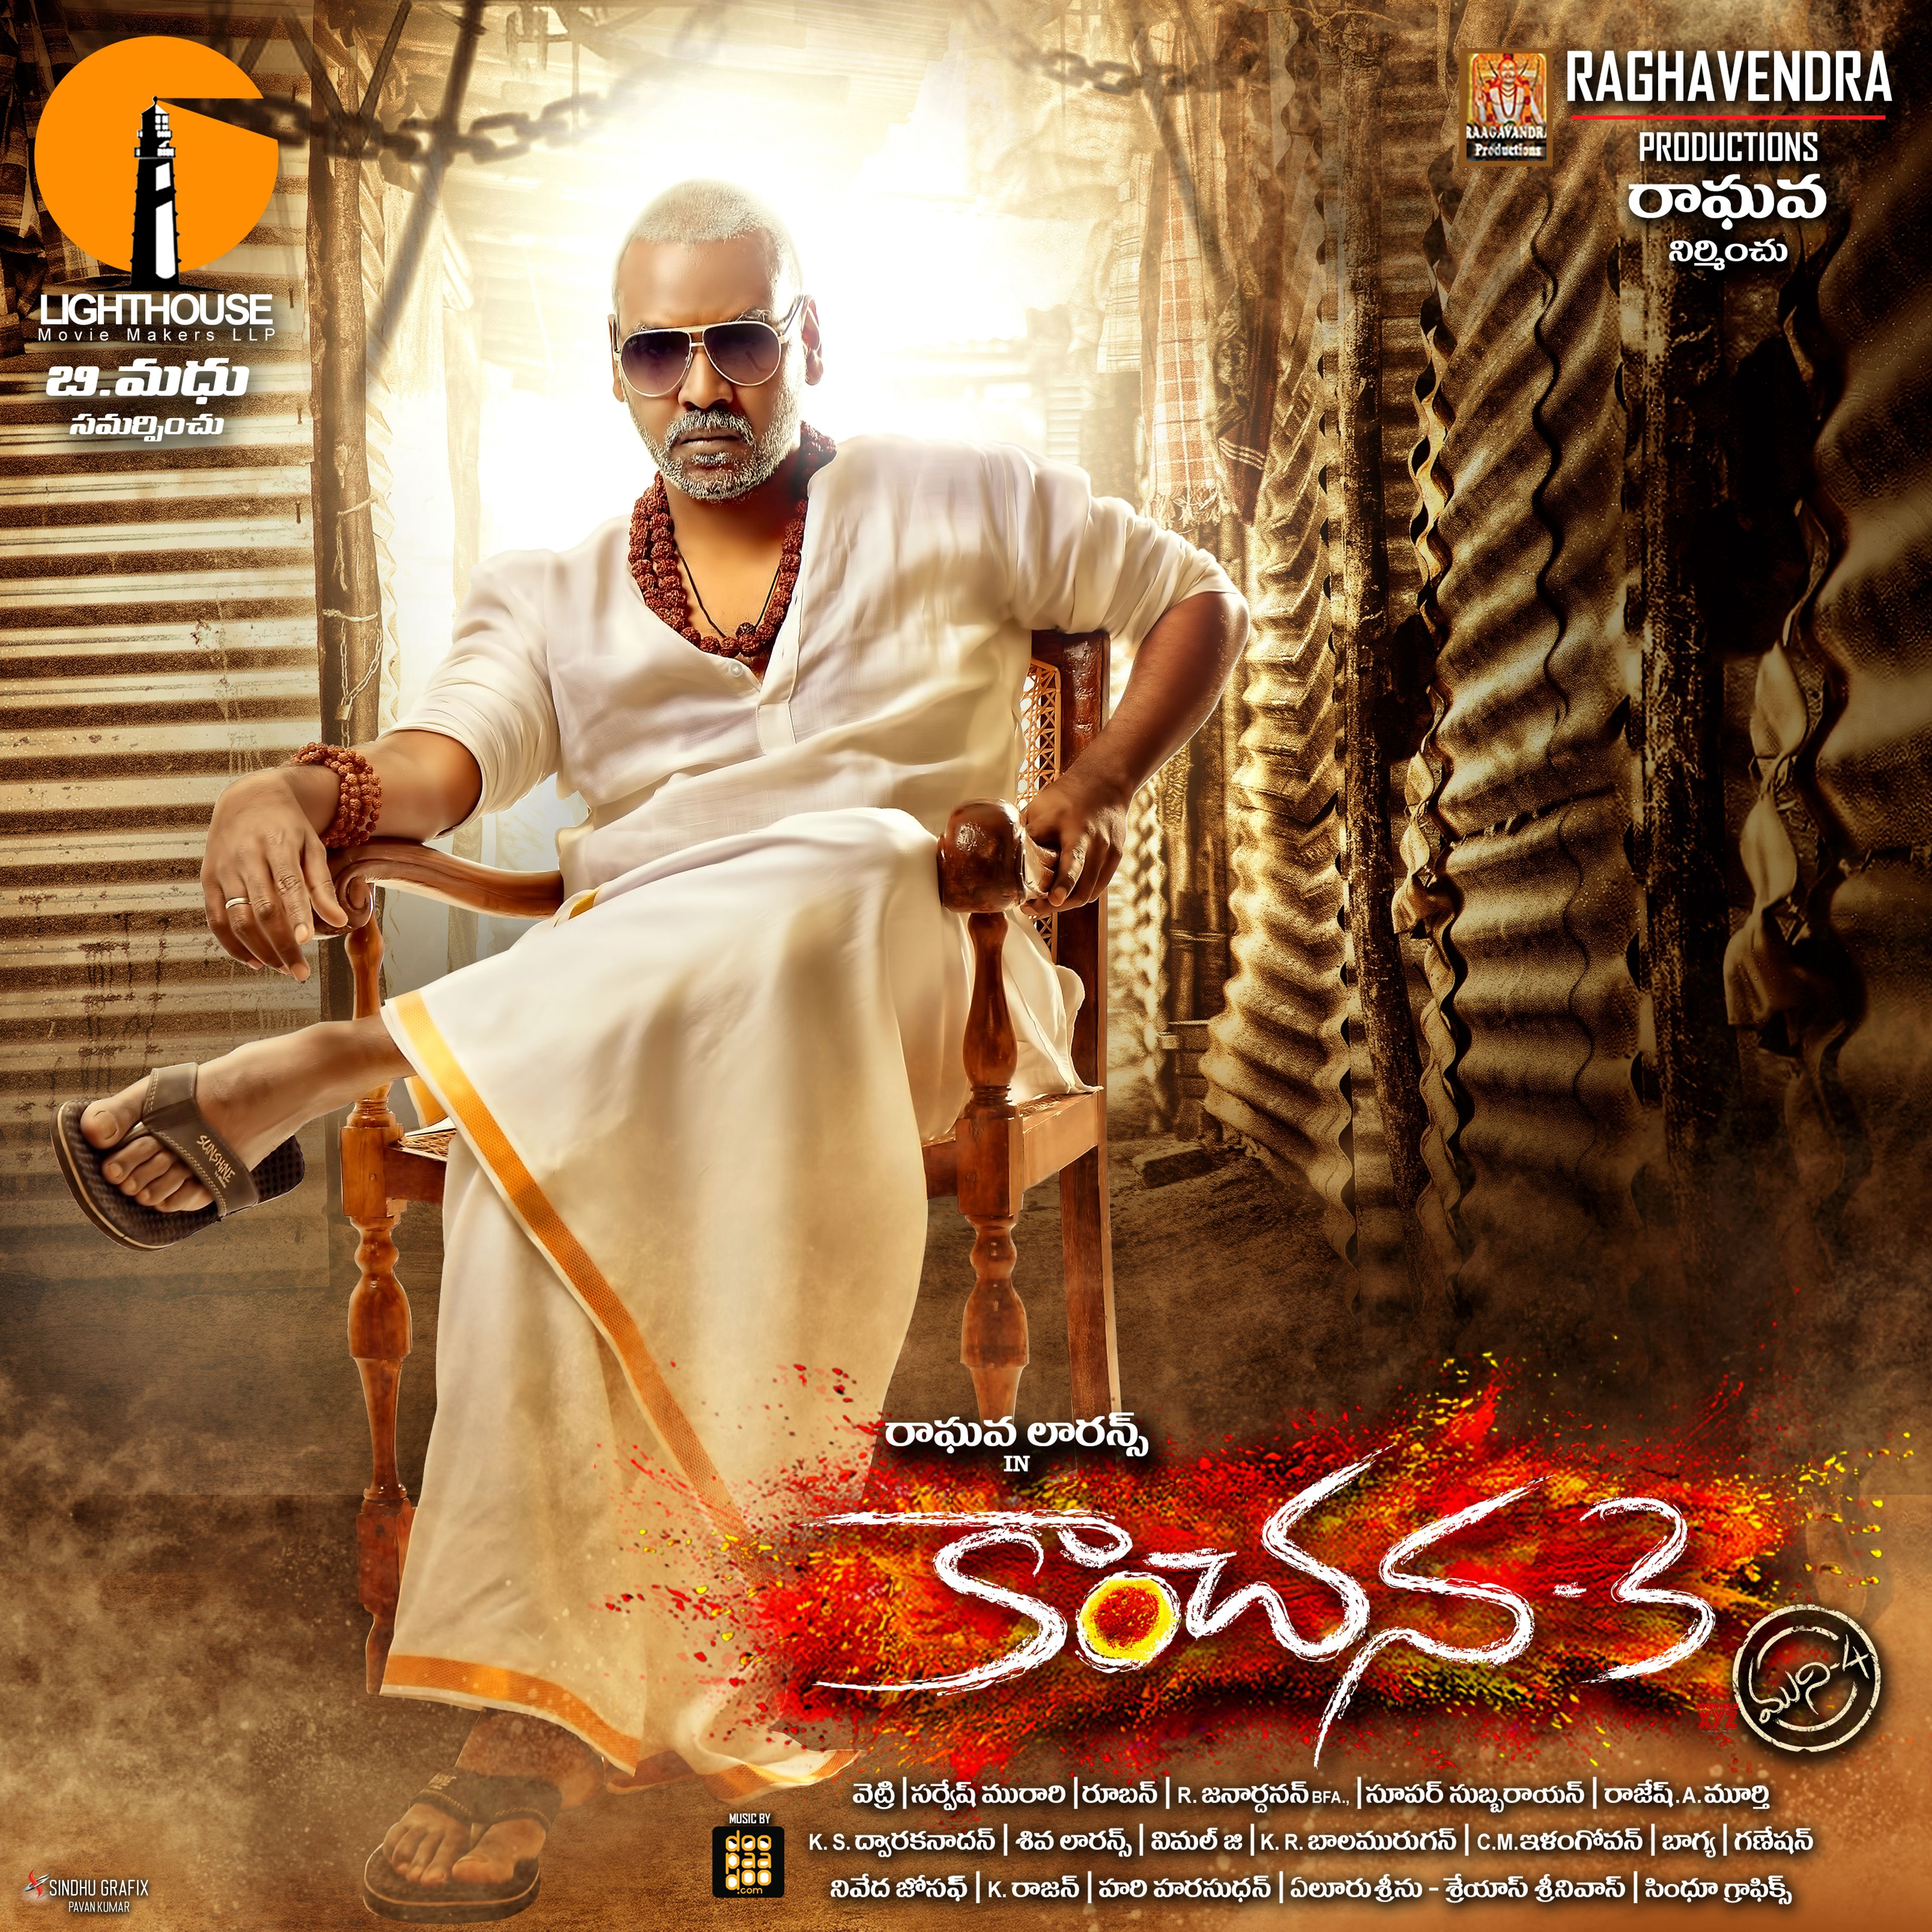 Kanchana 3 sold for a surprisingly high price